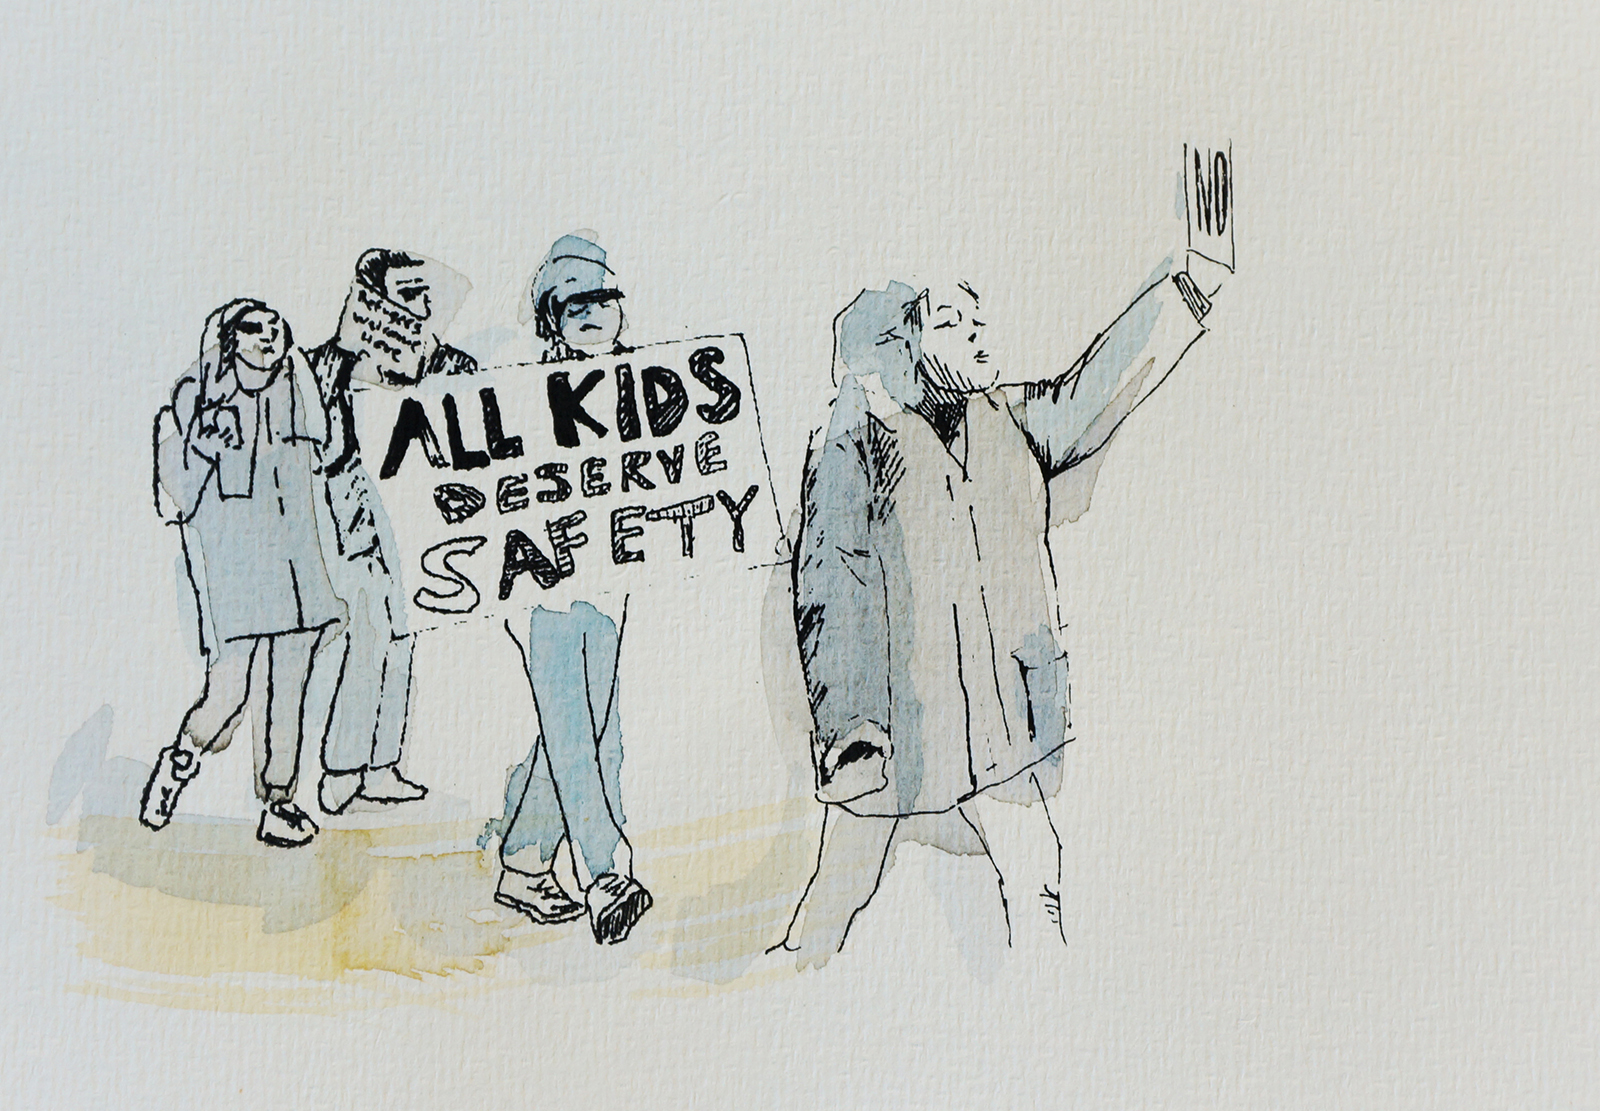 Ape_Bleakney_March Mixed Media - 'All Kids (4)', 6.5''x9.5'', Screen Print + Watercolor, 2018 copy.jpg